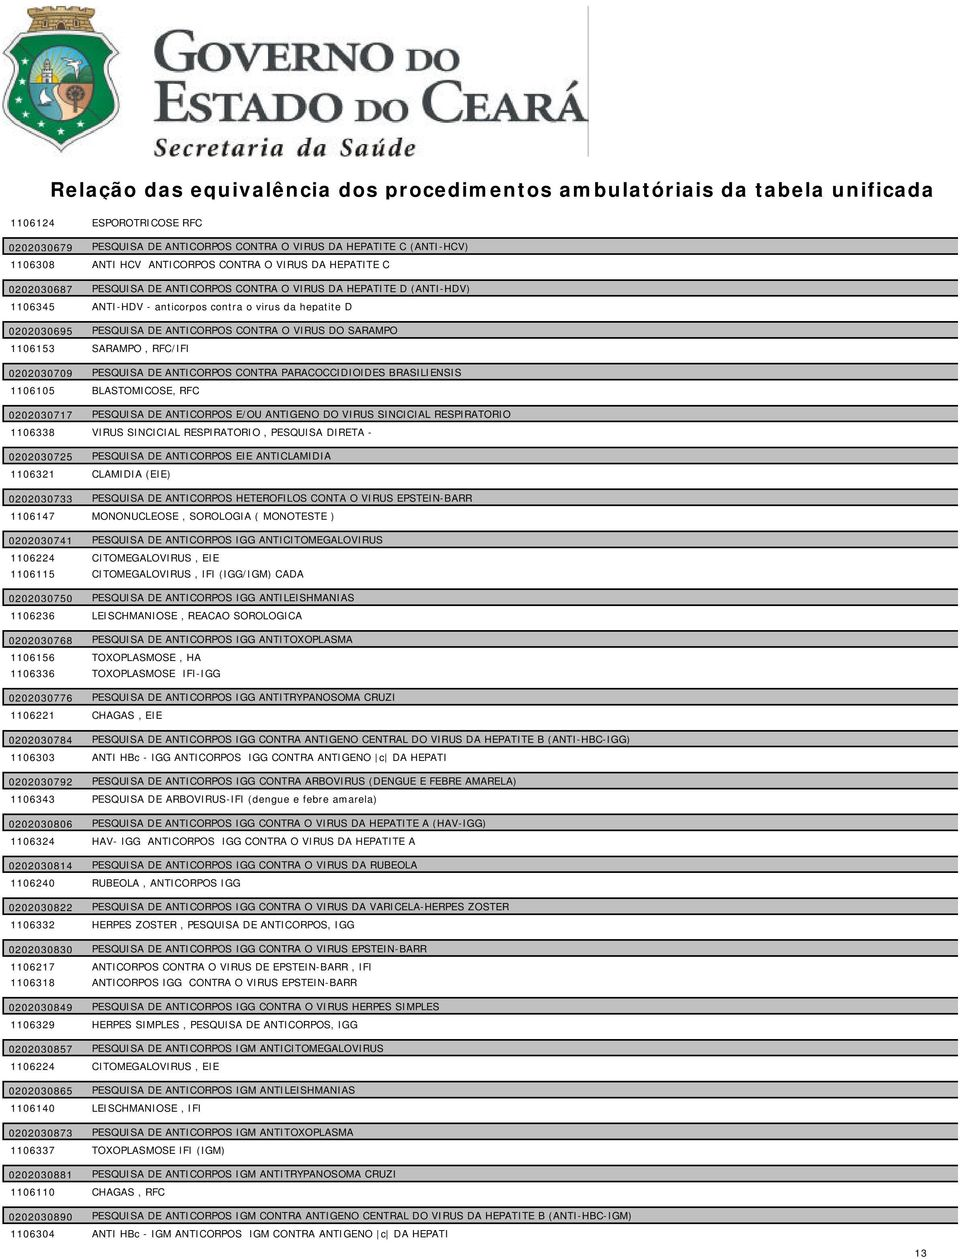 ANTICORPOS CONTRA PARACOCCIDIOIDES BRASILIENSIS 1106105 BLASTOMICOSE, RFC 0202030717 PESQUISA DE ANTICORPOS E/OU ANTIGENO DO VIRUS SINCICIAL RESPIRATORIO 1106338 VIRUS SINCICIAL RESPIRATORIO,